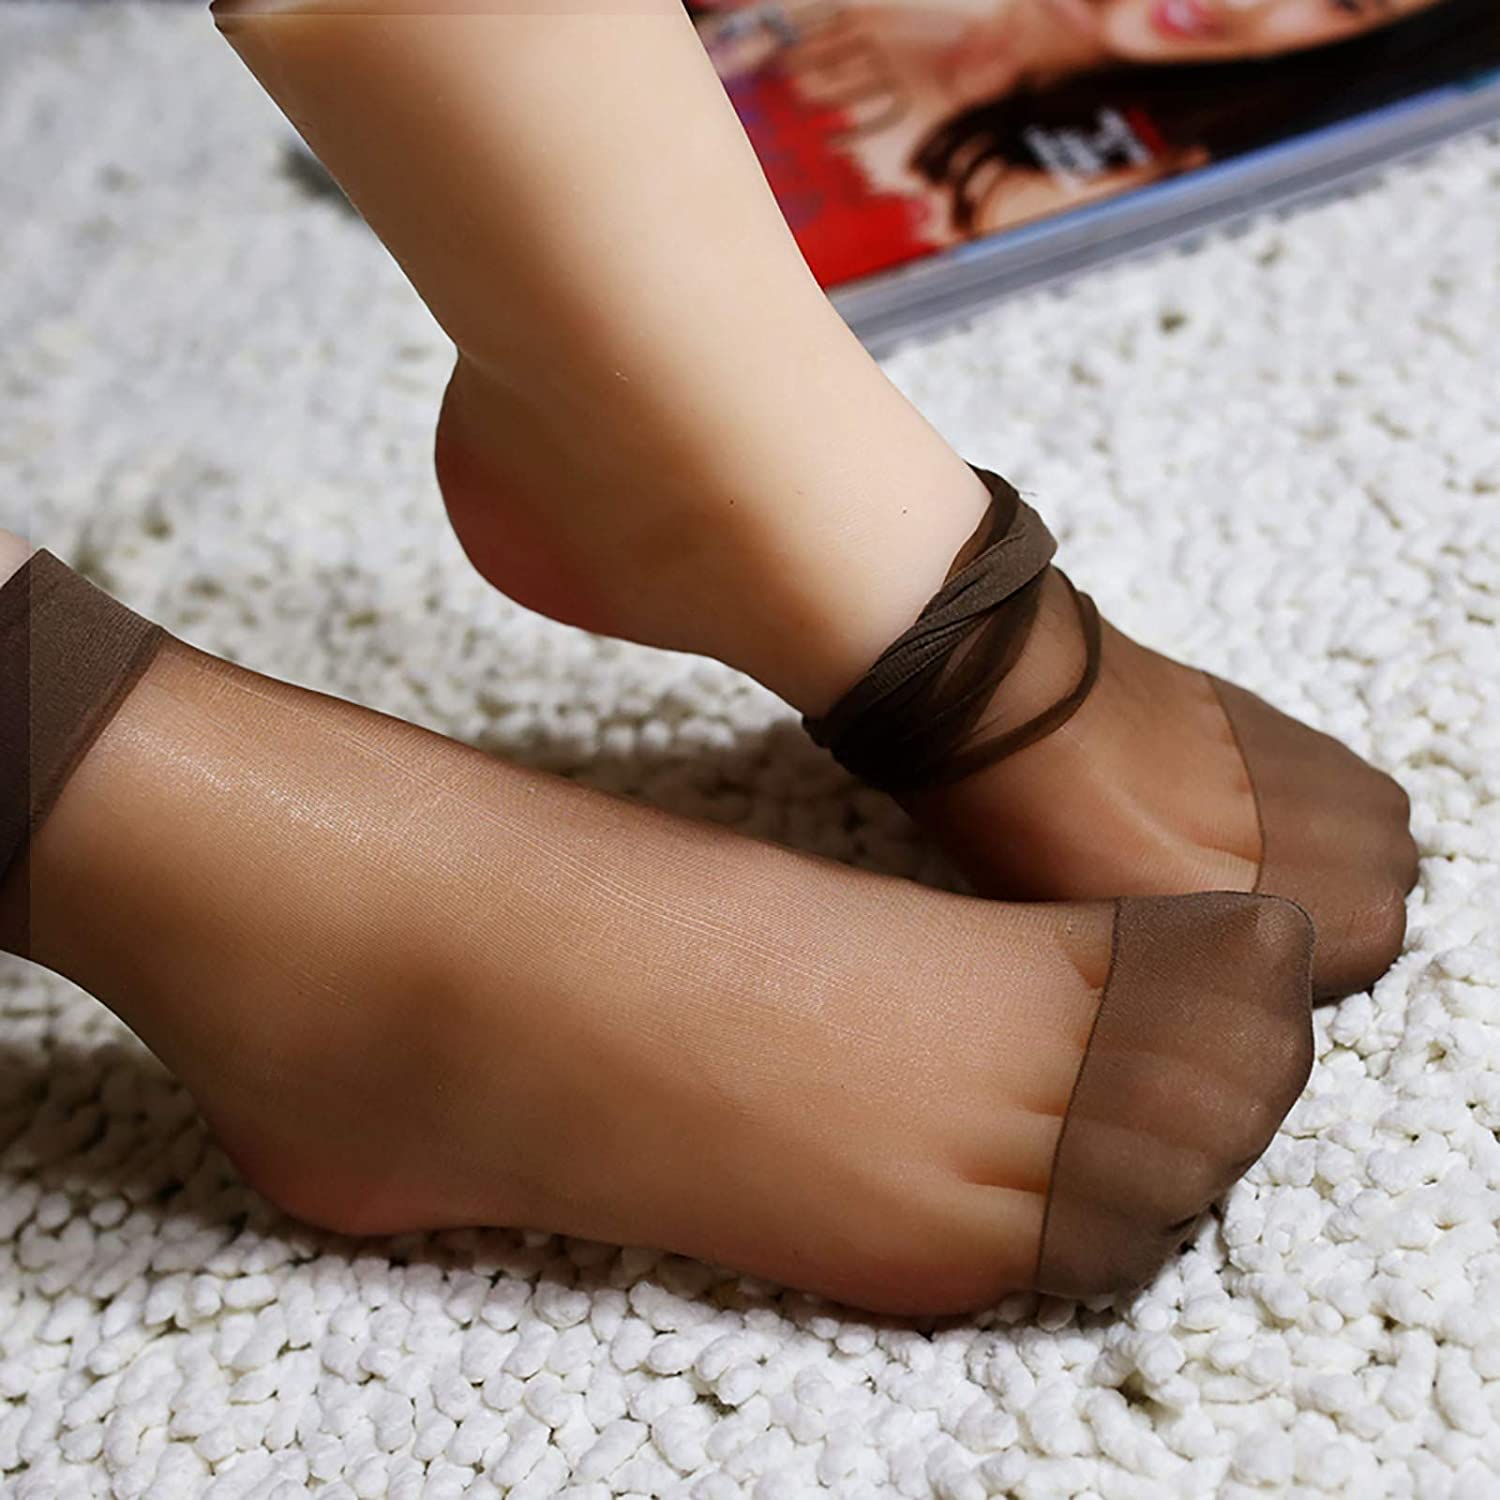 XIAOQIAO Silicone Lifesize Female Time sale Mannequin Surprise price Shoes Foot Cha Ankle